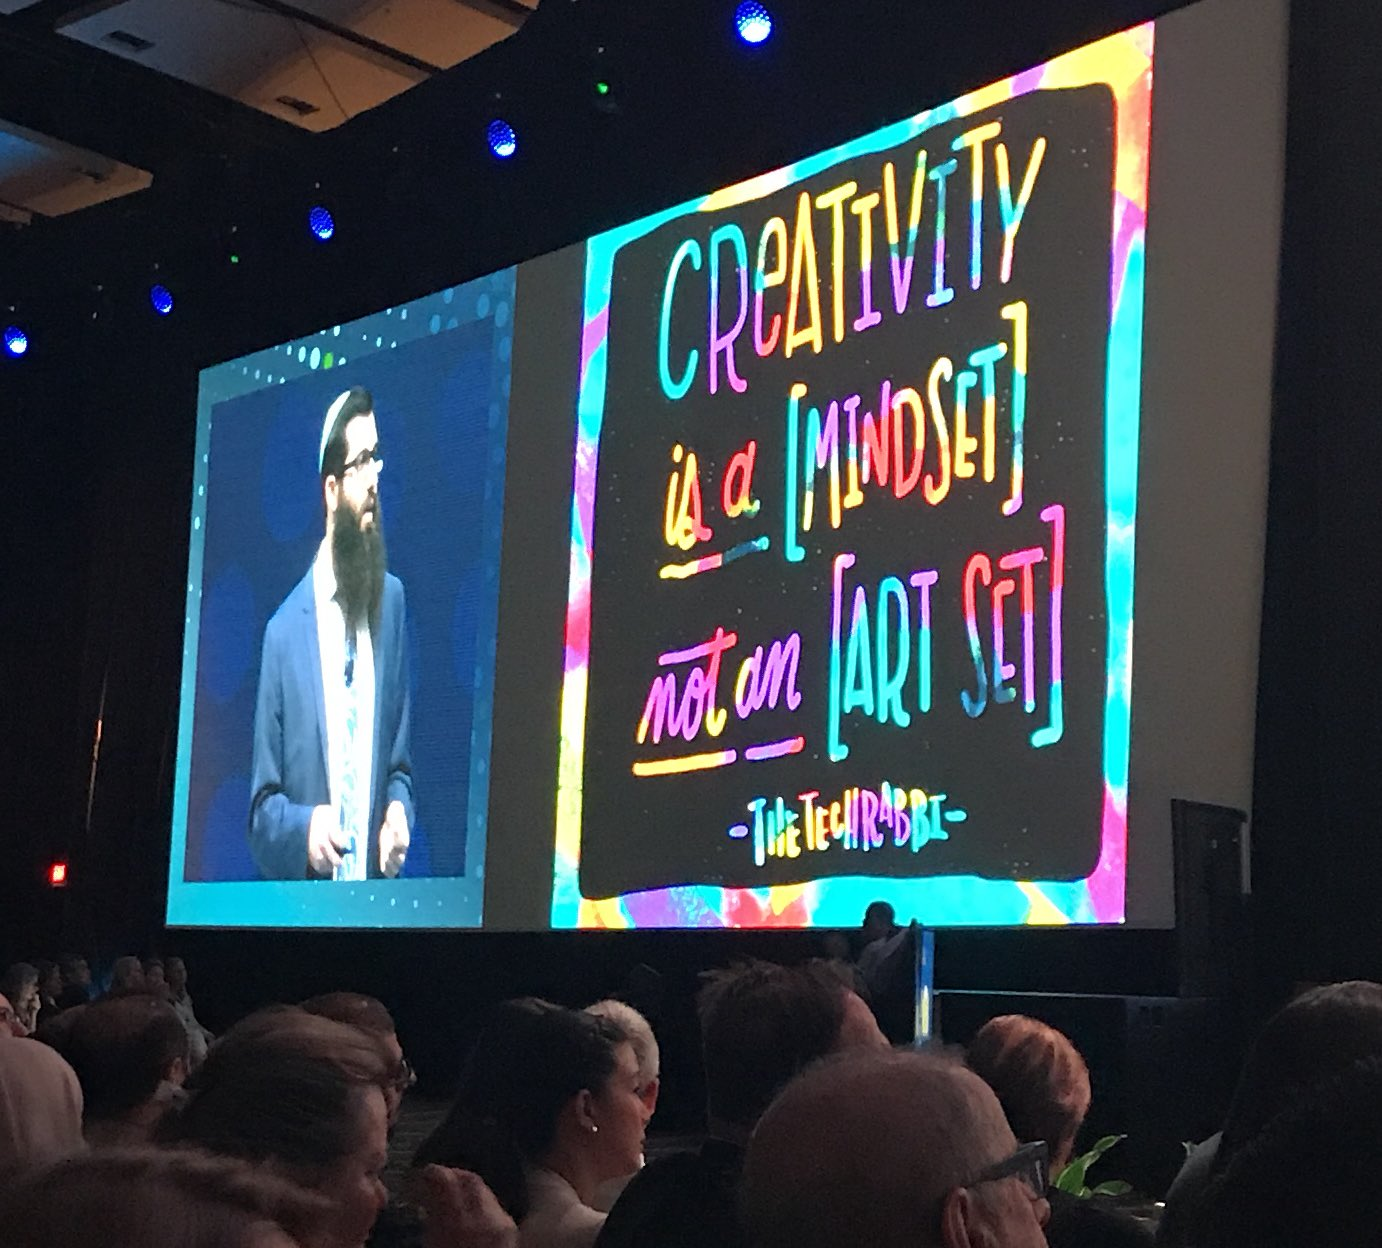 #Creativity is a mindset, not an art set. @TheTechRabbi #ISTE18 https://t.co/LVVB2A1E03